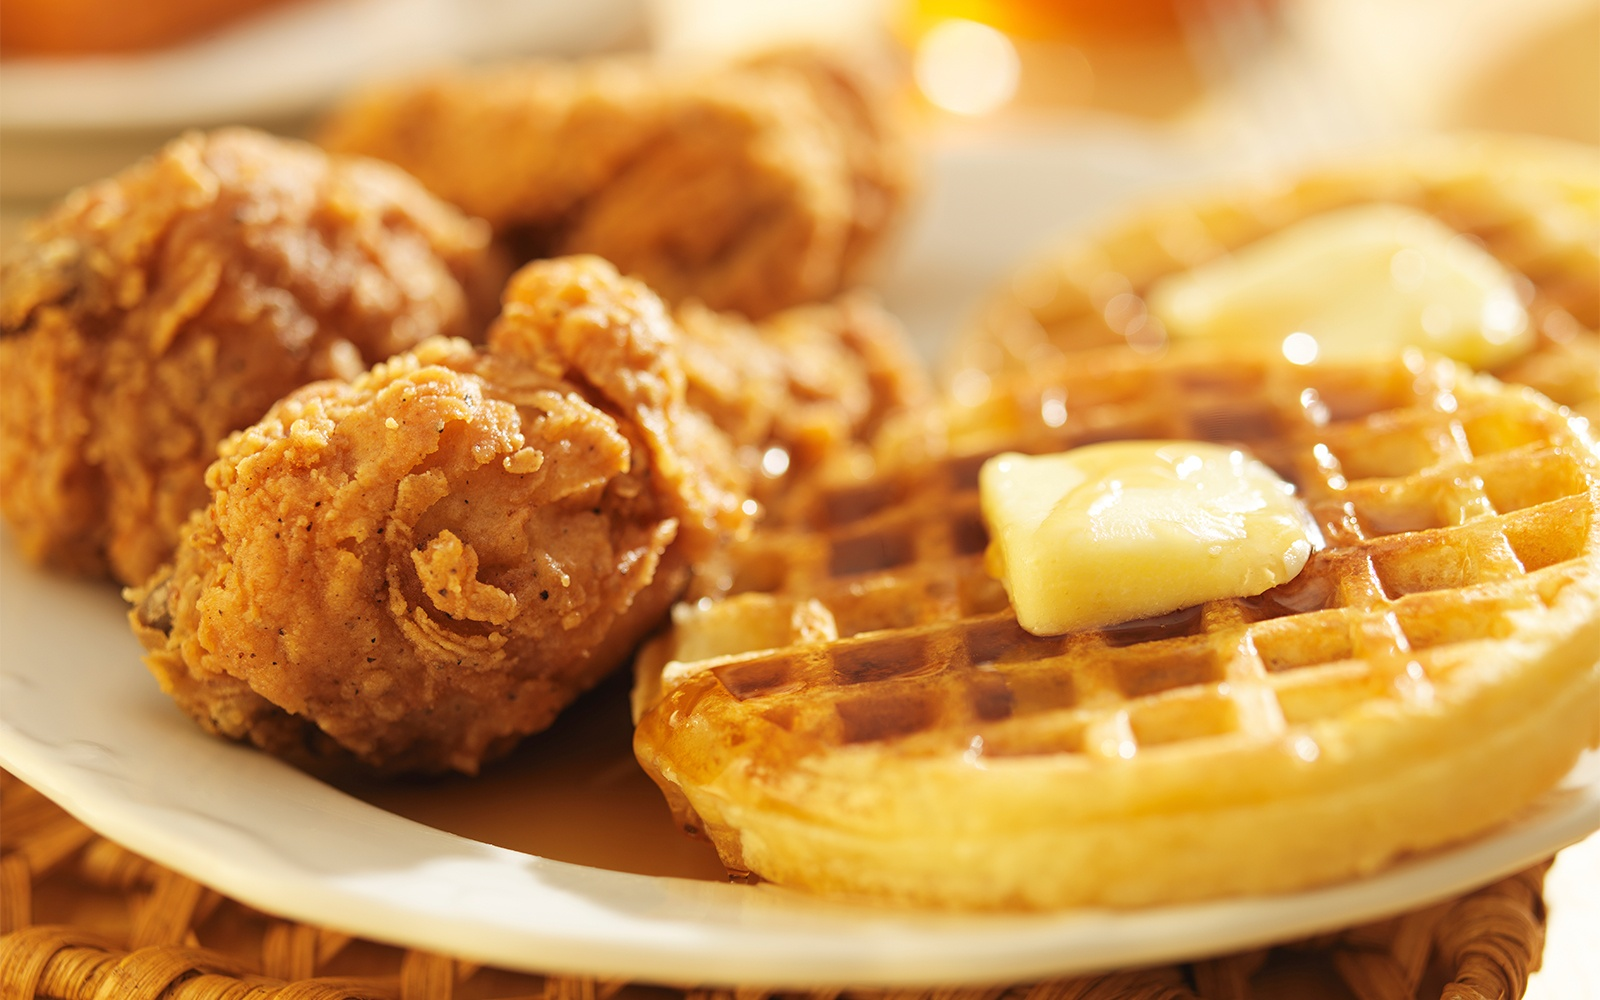 Chicken and Waffles in the American South